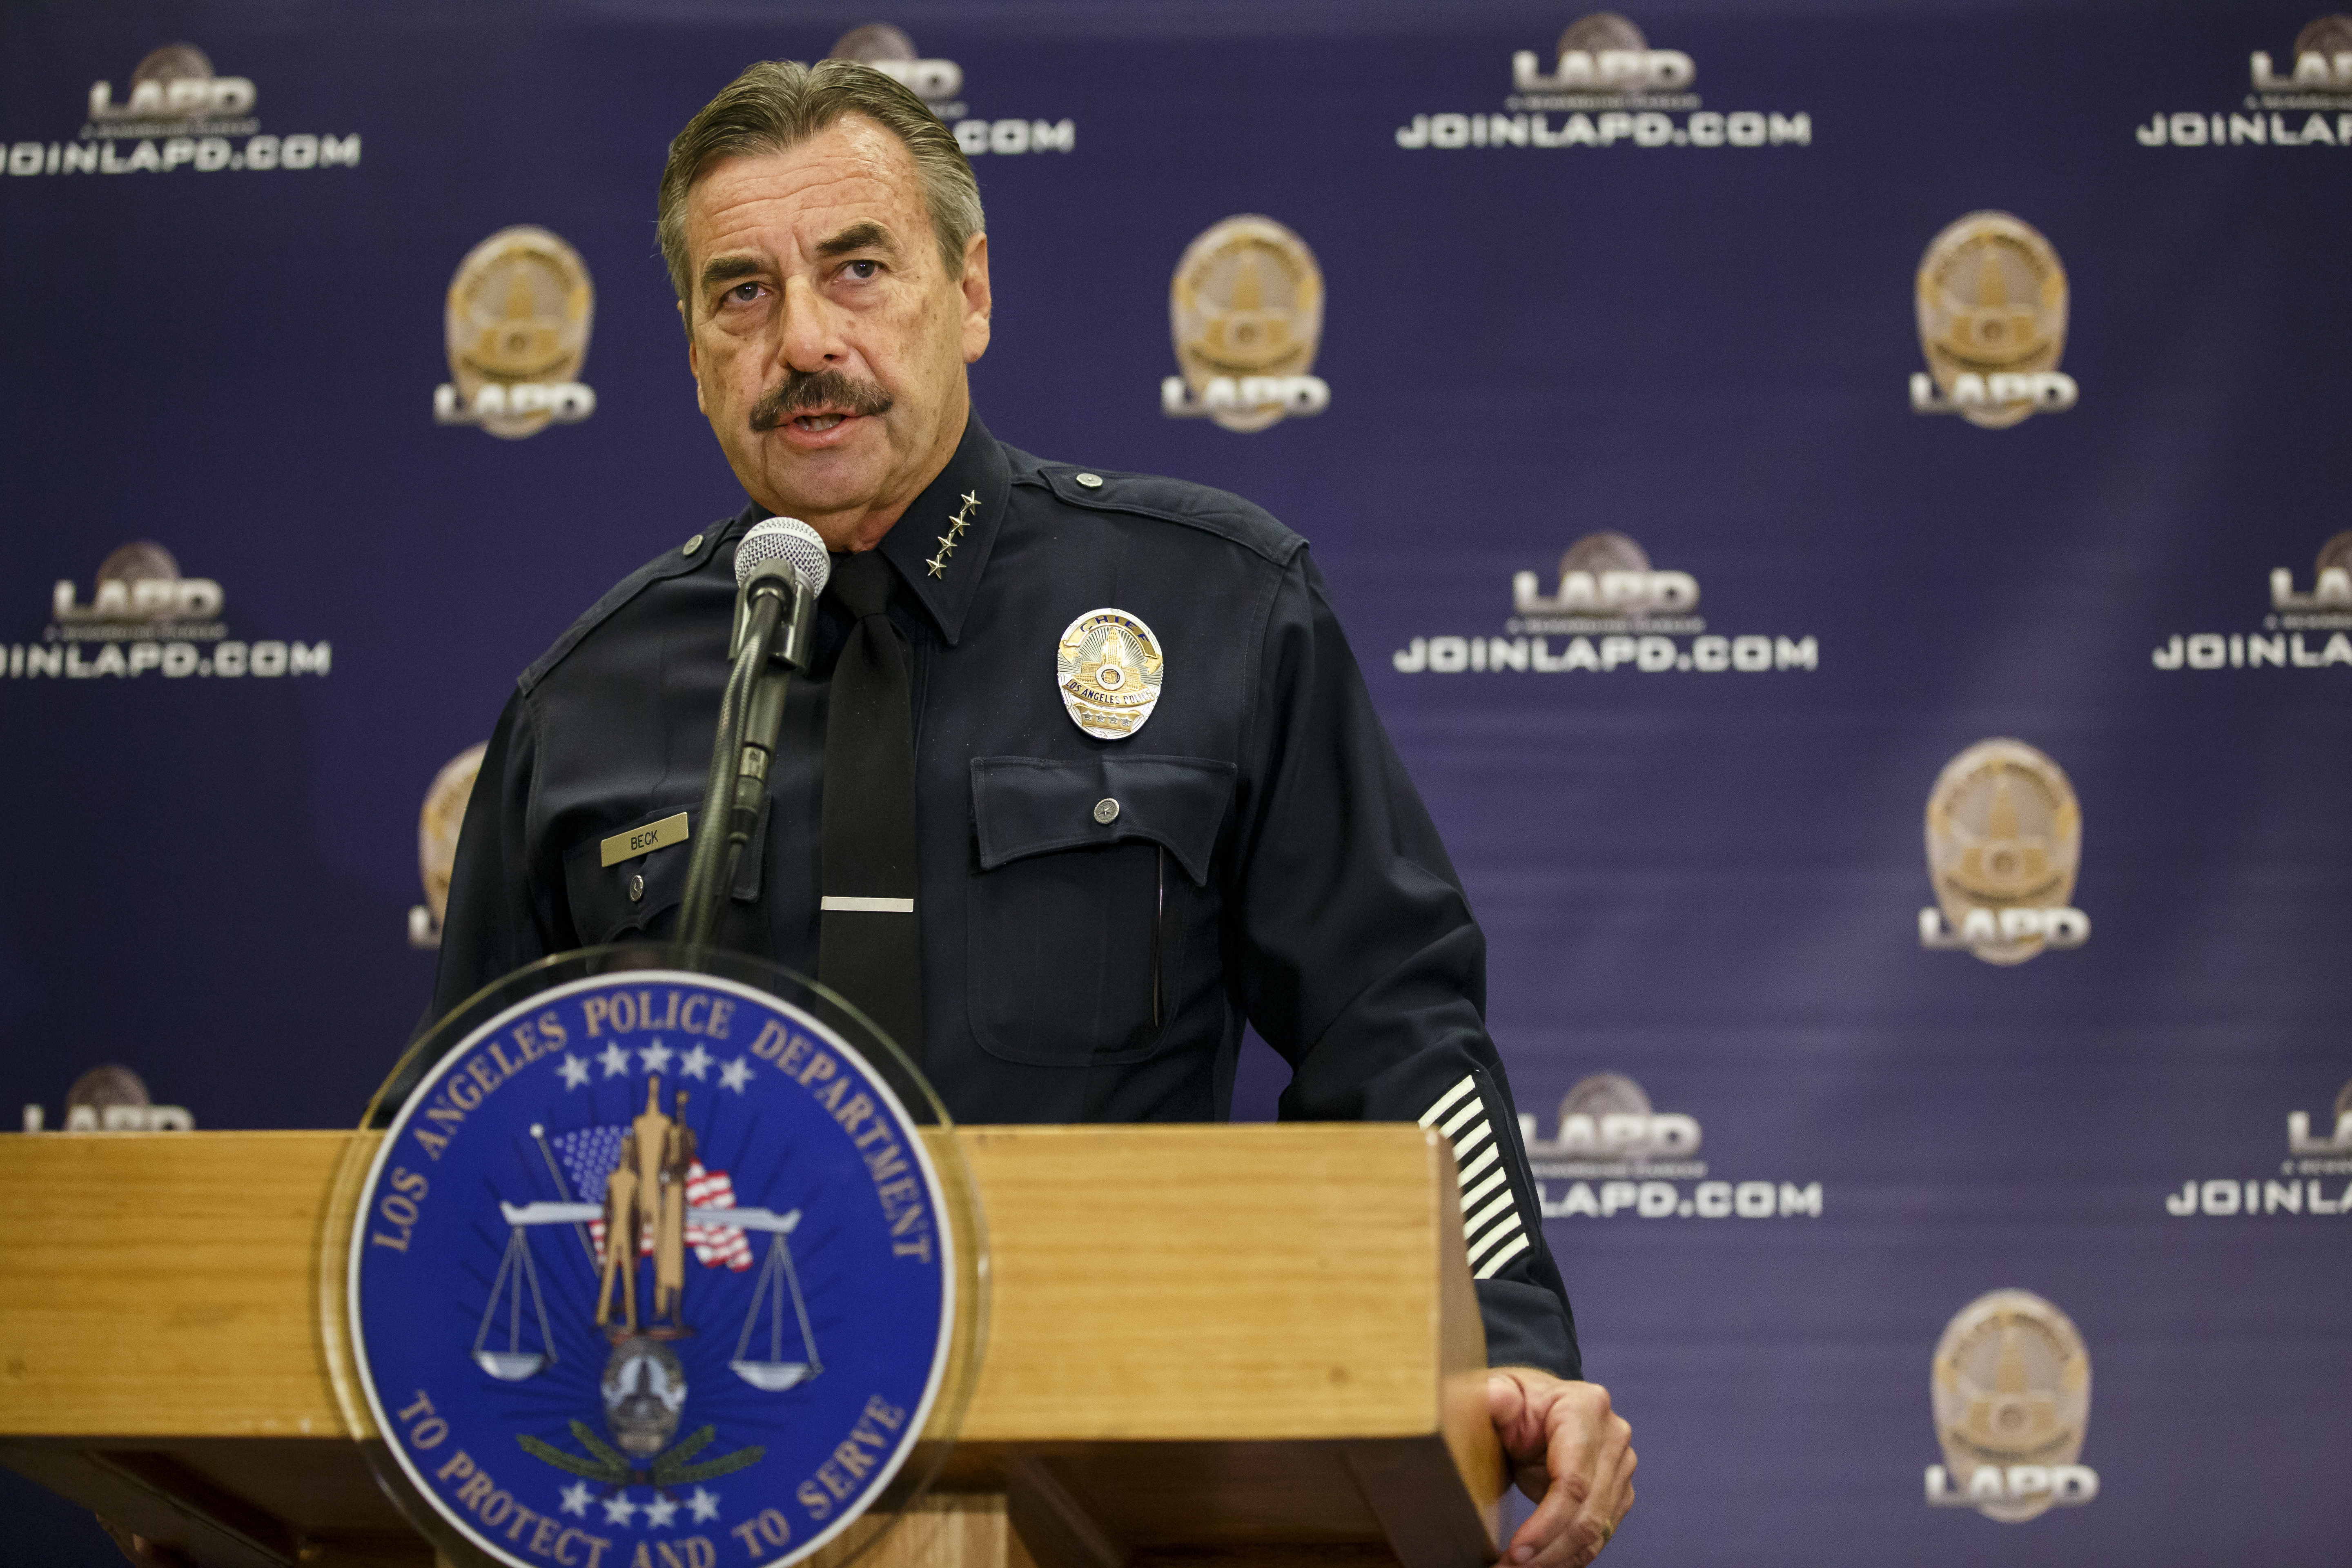 LAPD Chief Charlie Beck speaks during a press conference to address the two recent officer-involved-shooting in Los Angeles, Calif., on Oct. 3, 2016.